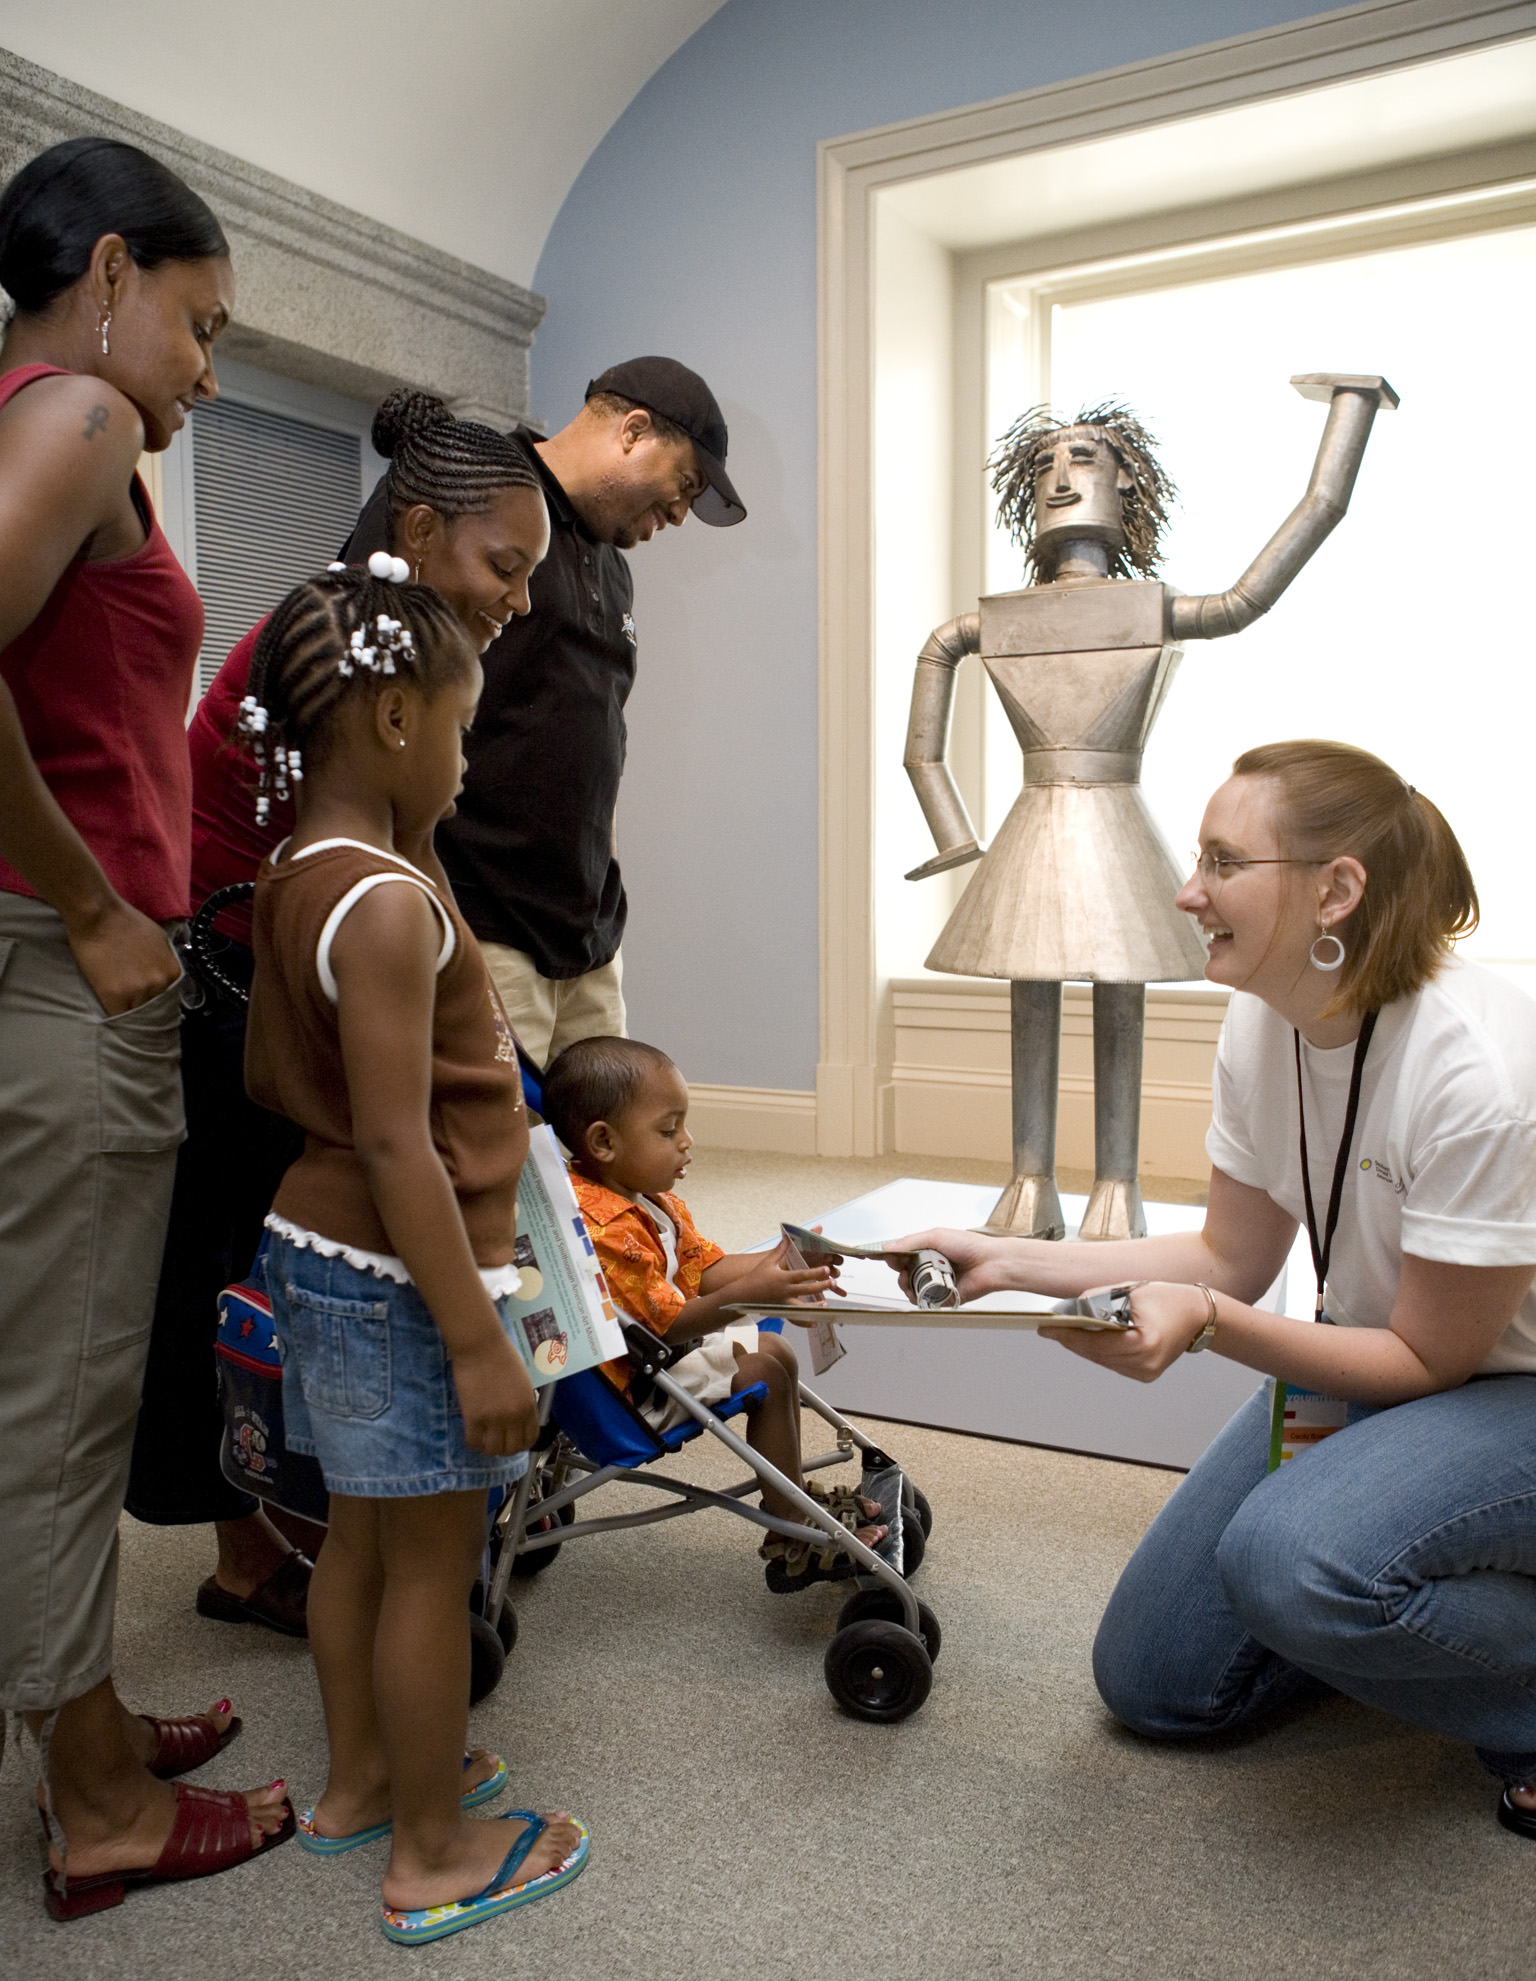 A family with a baby in a stroller receives a flyer from a woman in front of a metal sculpture.